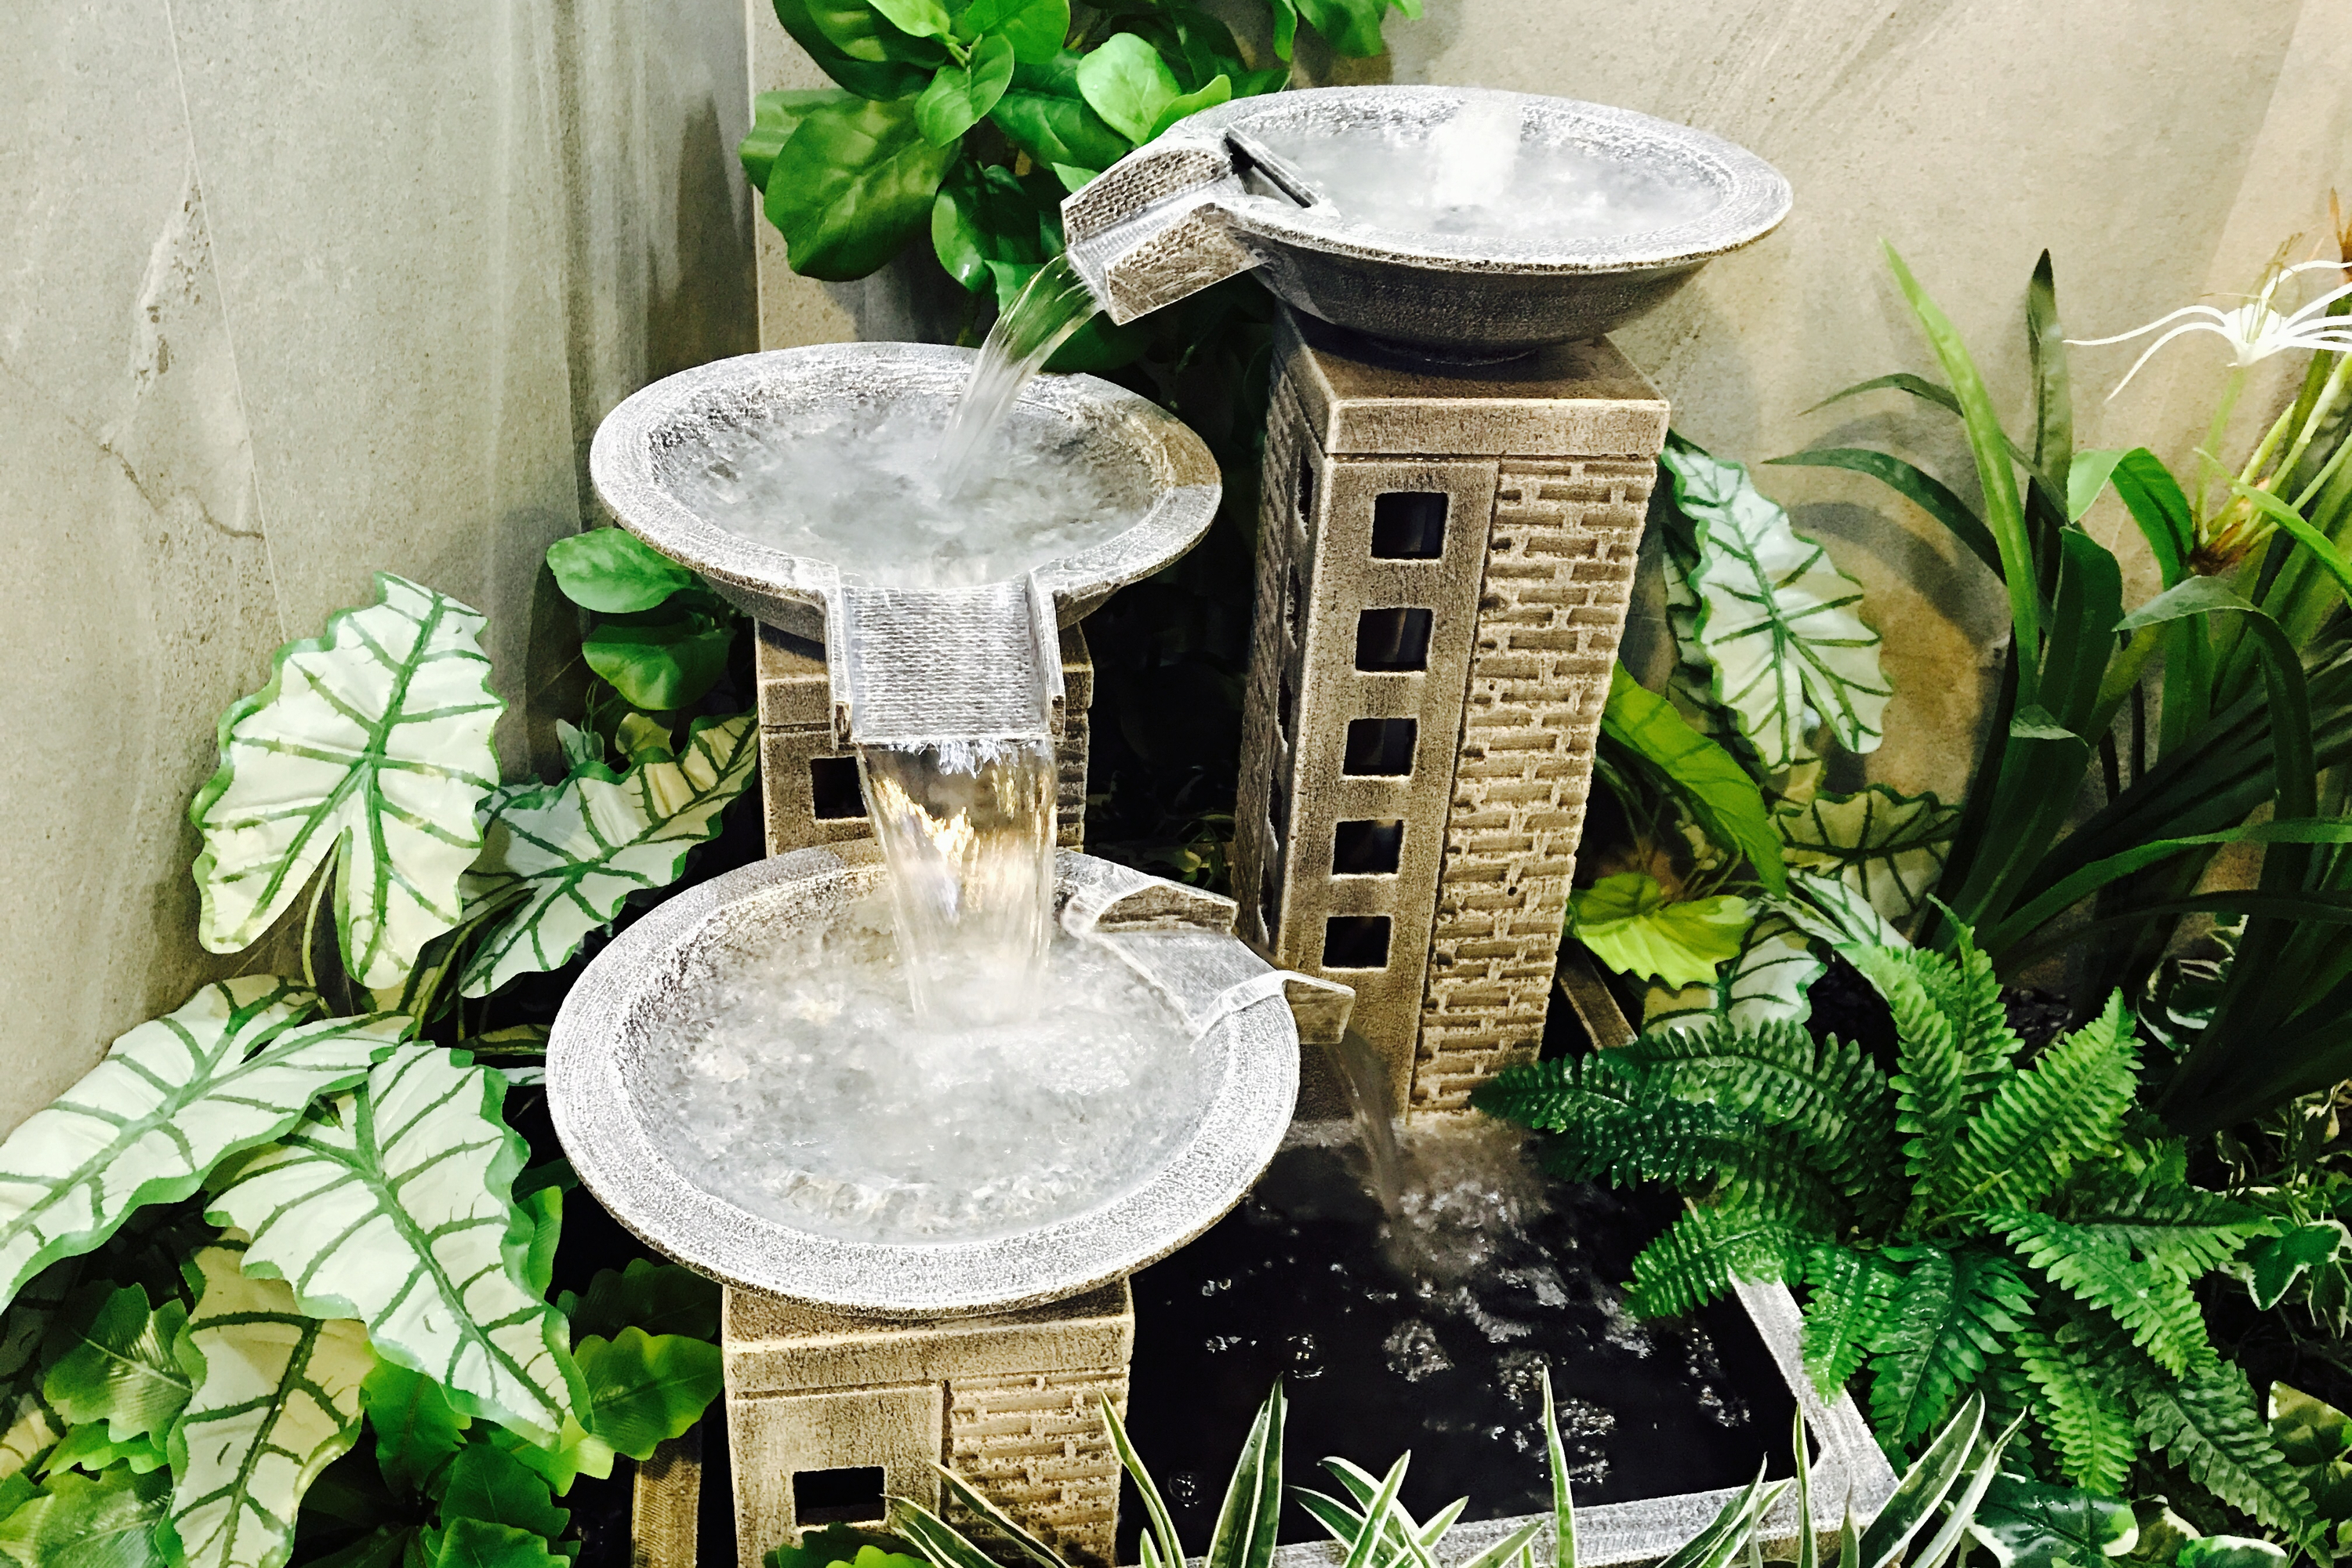 If you're looking for a little peace and quiet, or a way to be more mindful, you need to add one of these indoor water fountains to your home. This indoor water fountain with plants will be the most relaxing place in your home.